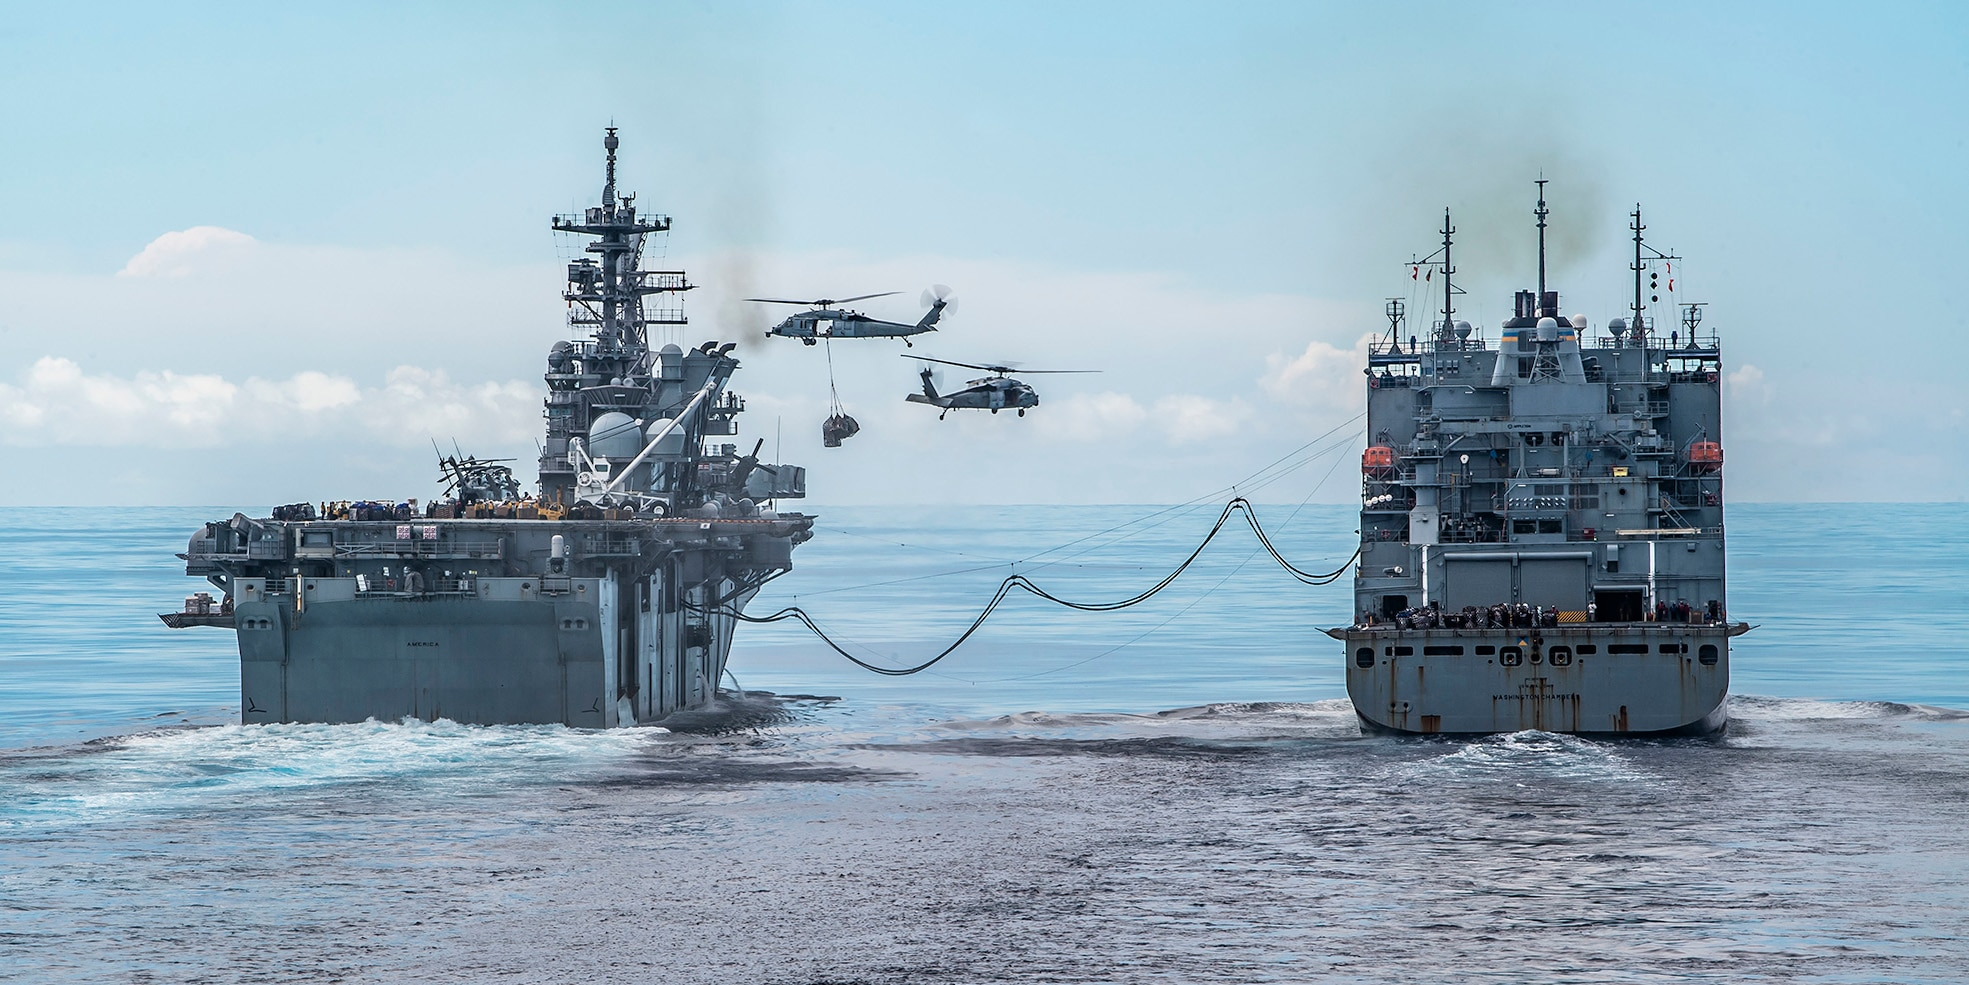 The amphibious assault ship USS America (LHA 6), left, conducts a replenishment-at-sea with the dry cargo and ammunition ship USNS Washington Chambers (T-AKE 11).